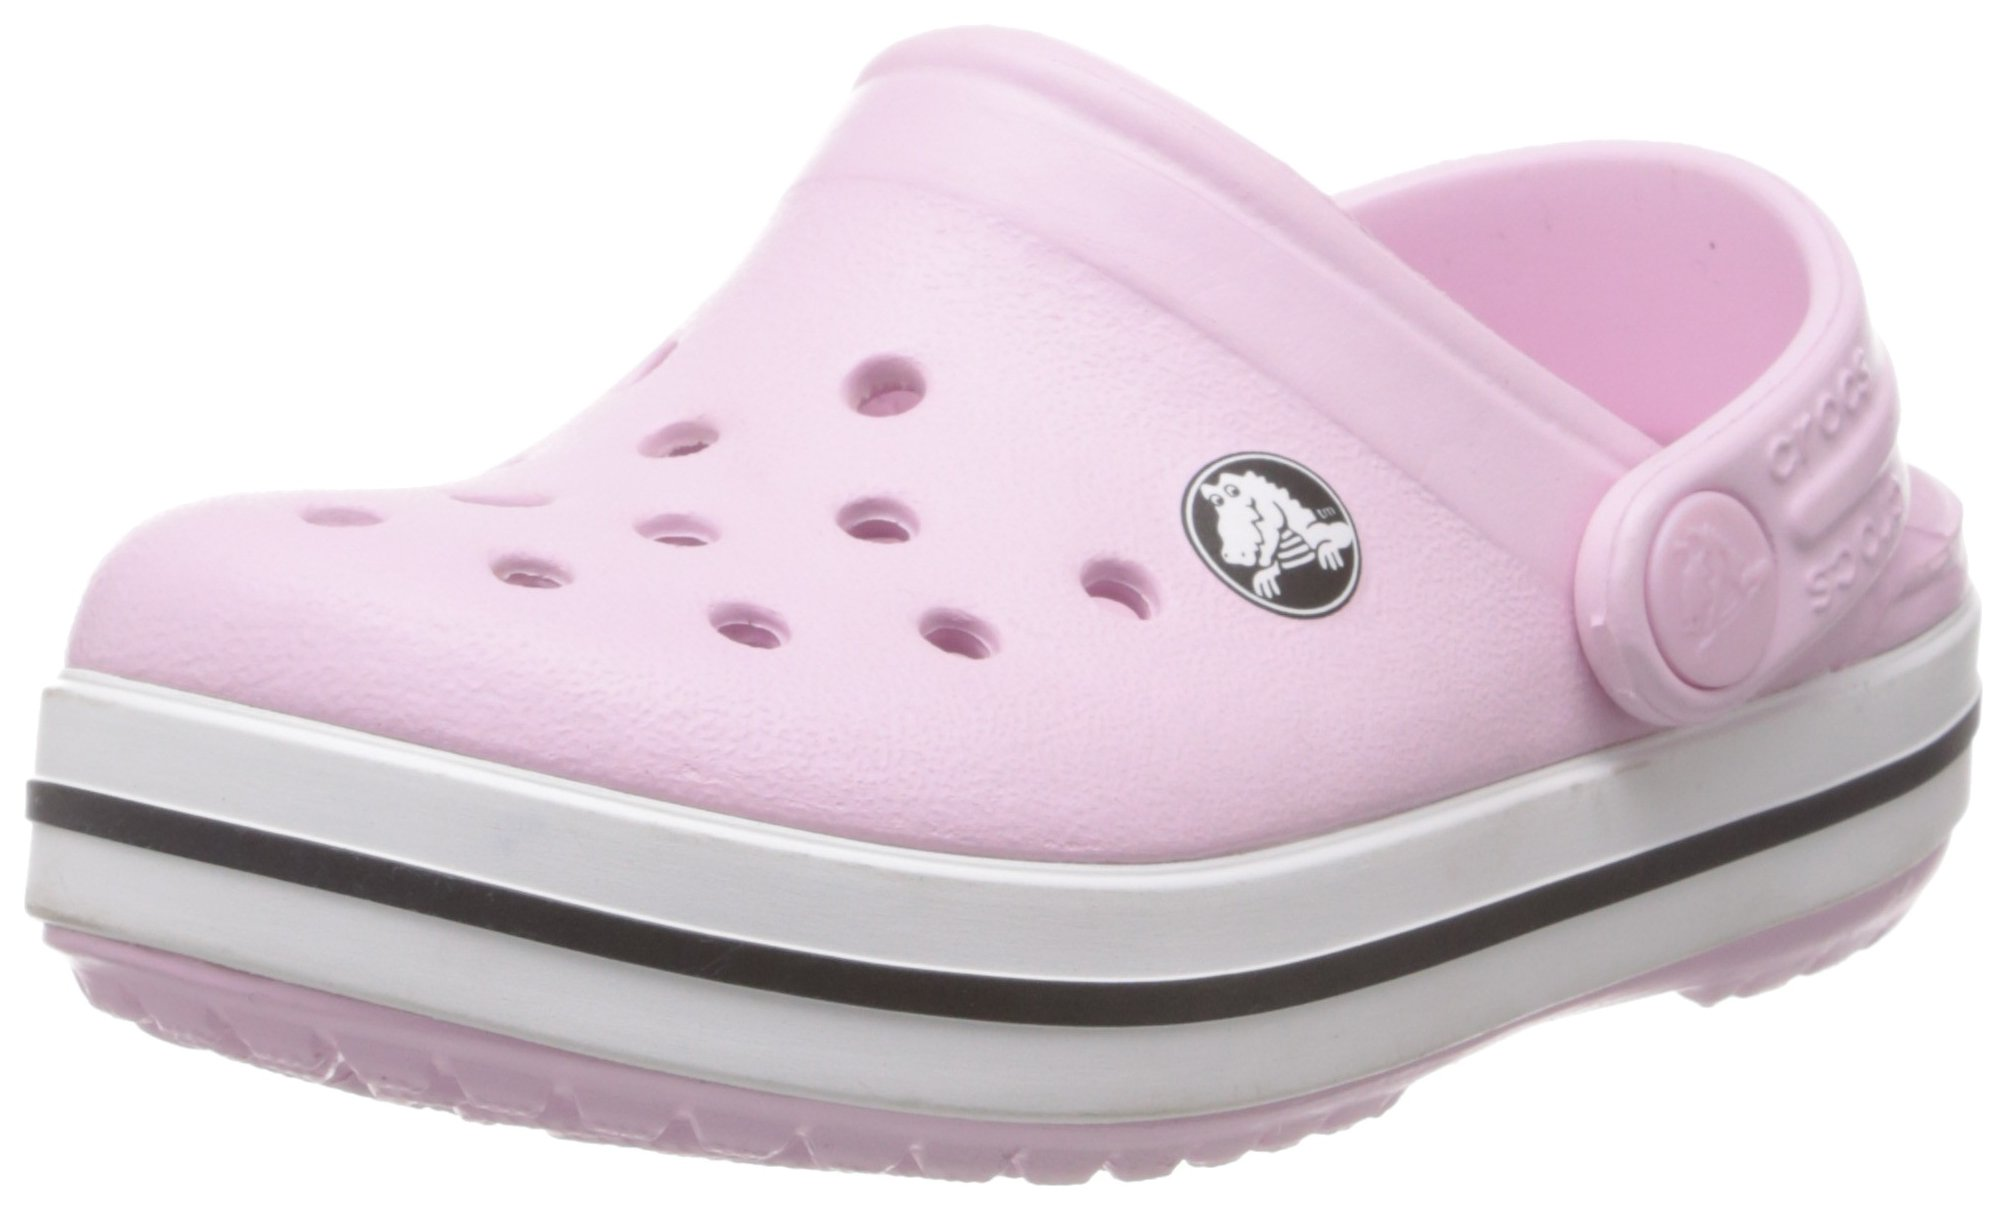 Crocs Kids' Crocband Clog, Bubblegum, 10-11 US Little Kid